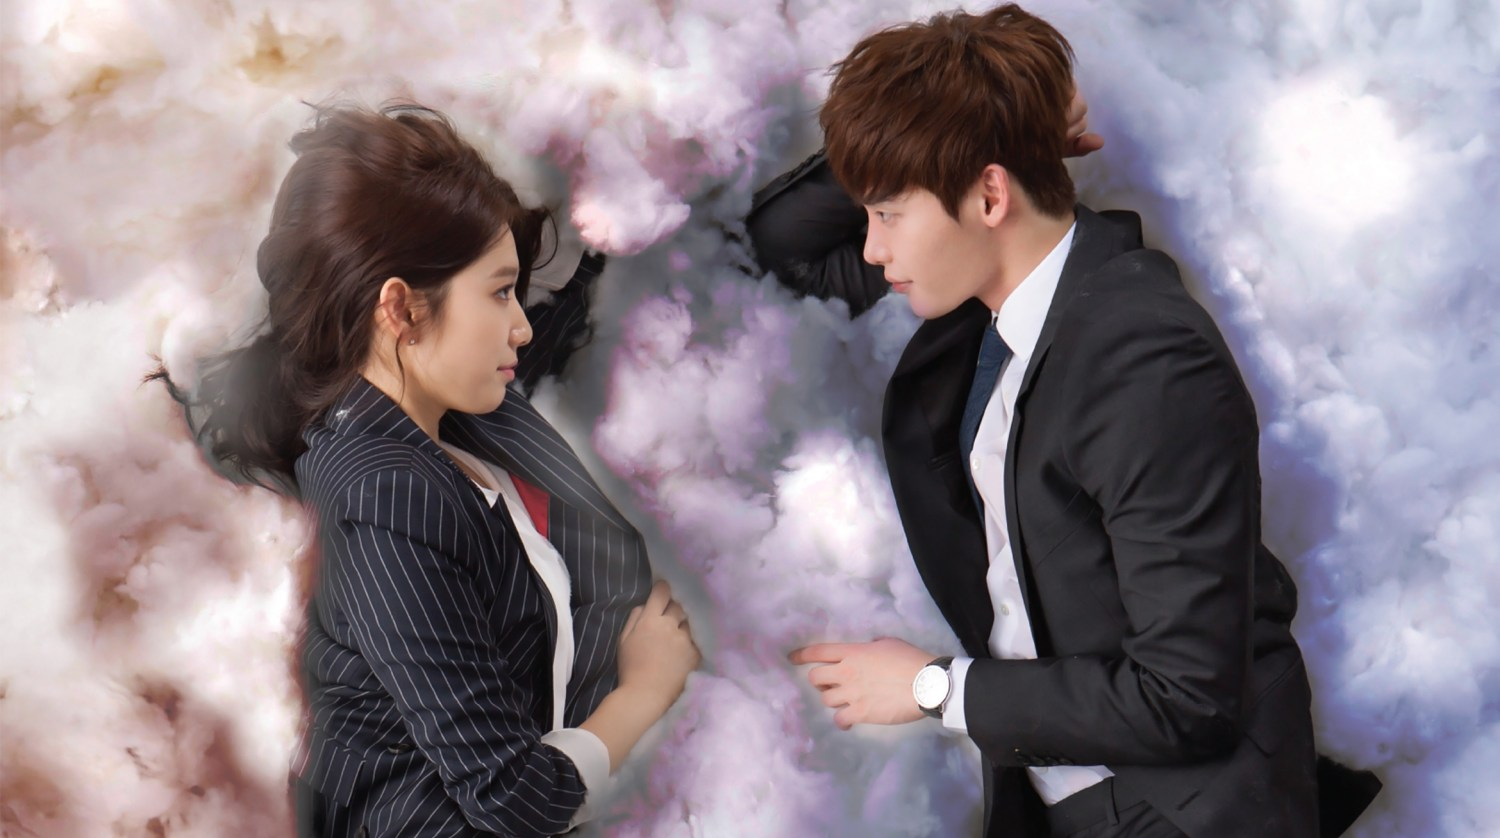 Pinocchio k drama korean viki eng sub english subtitles